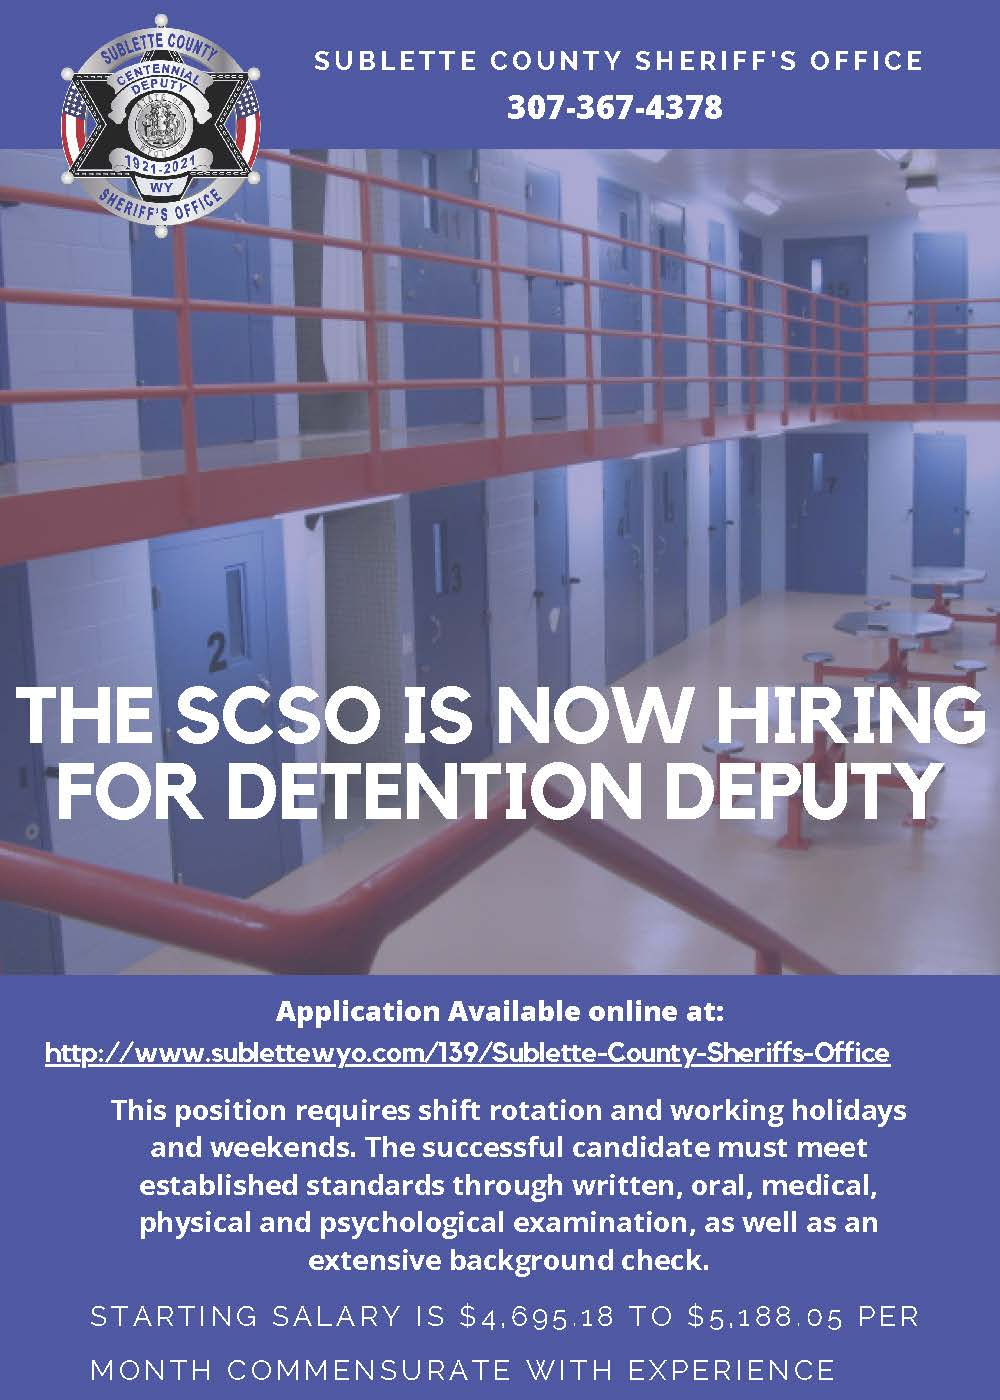 SCSO seeking qualified candidates for Detention Deputy